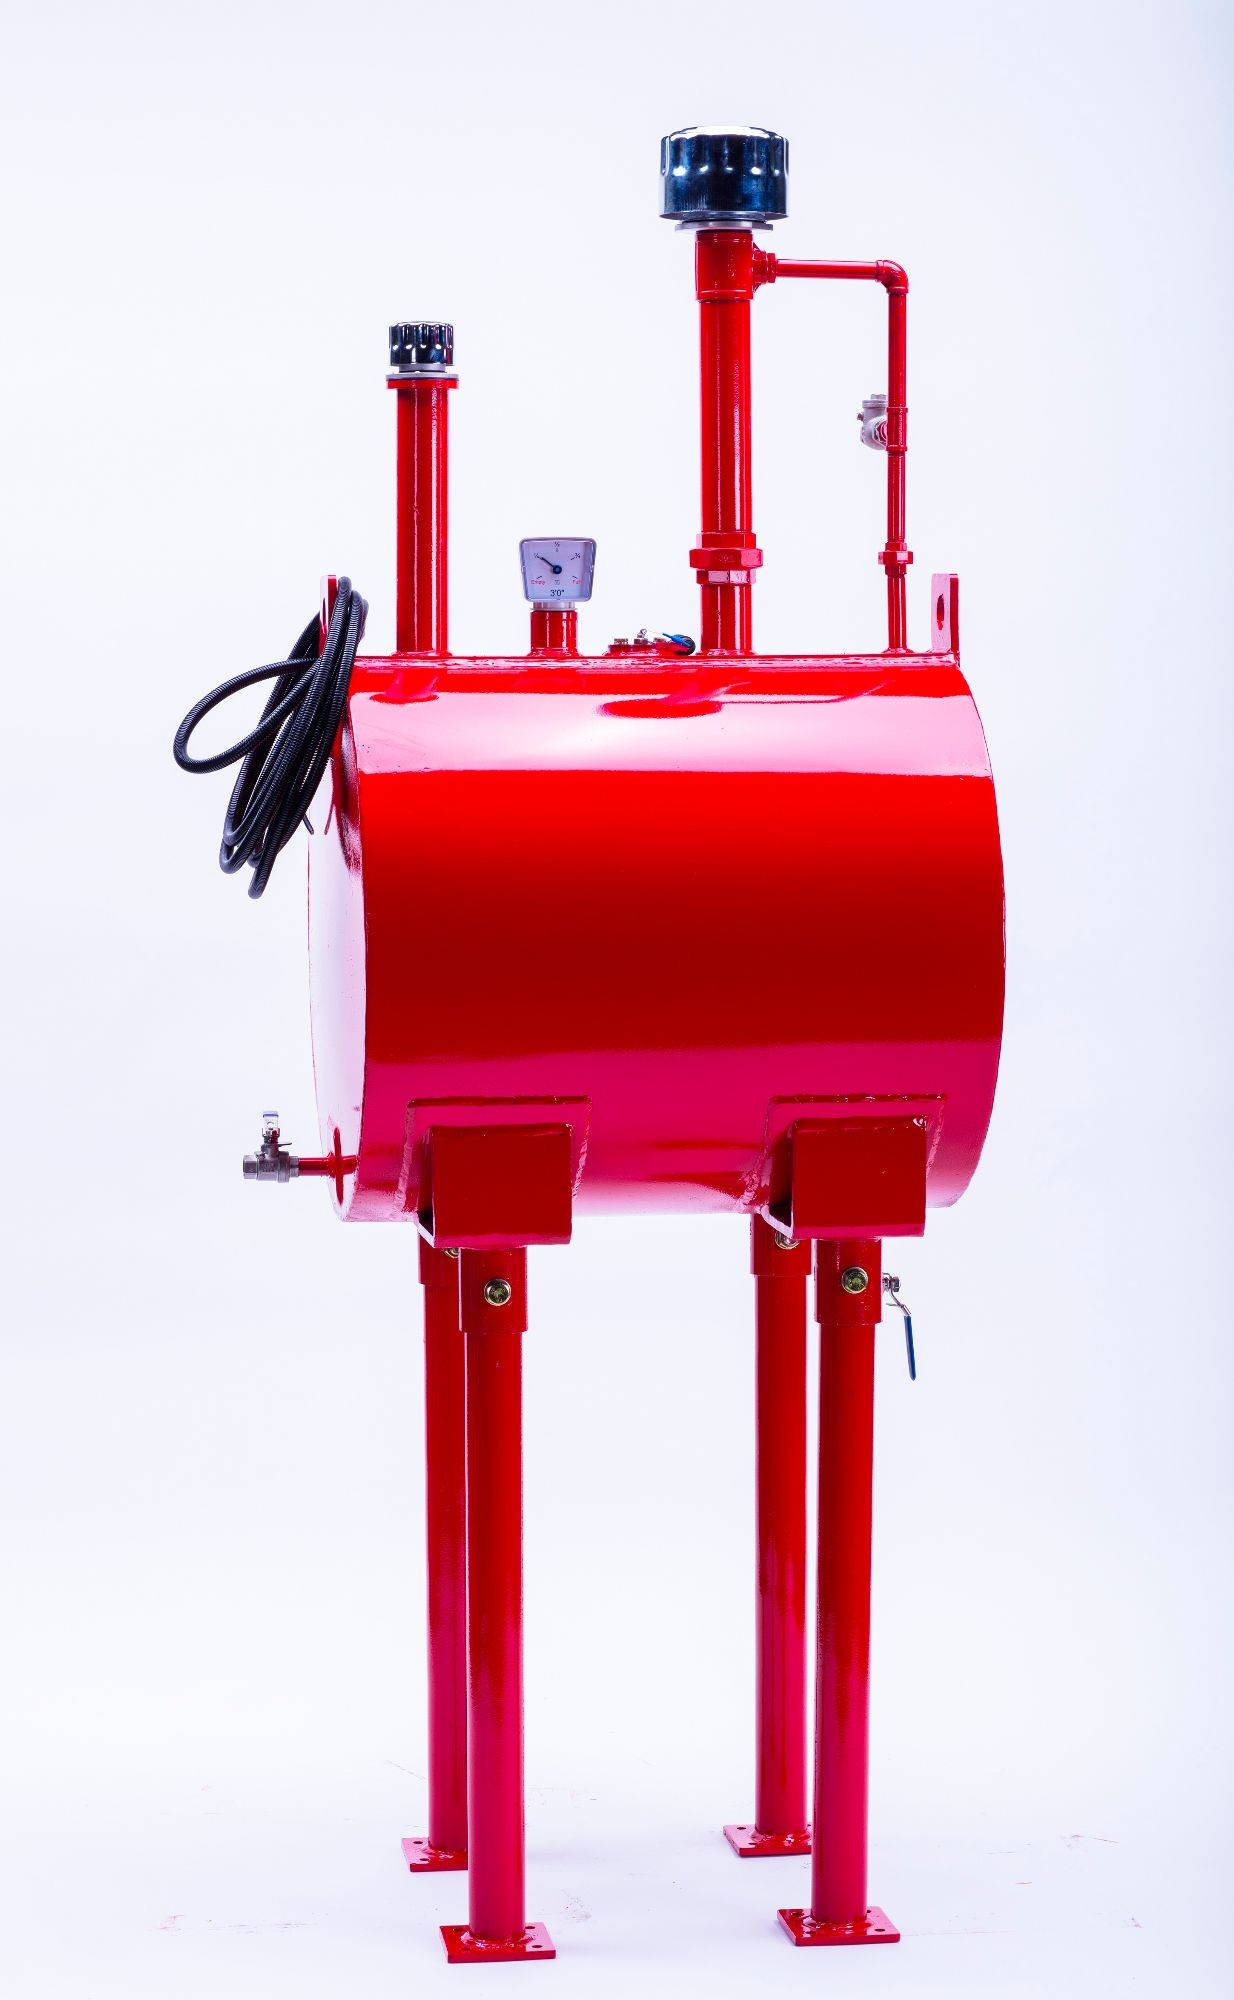 HTTPS://www.nmfirepumps.com/upload/product/1566368644737198.jpg